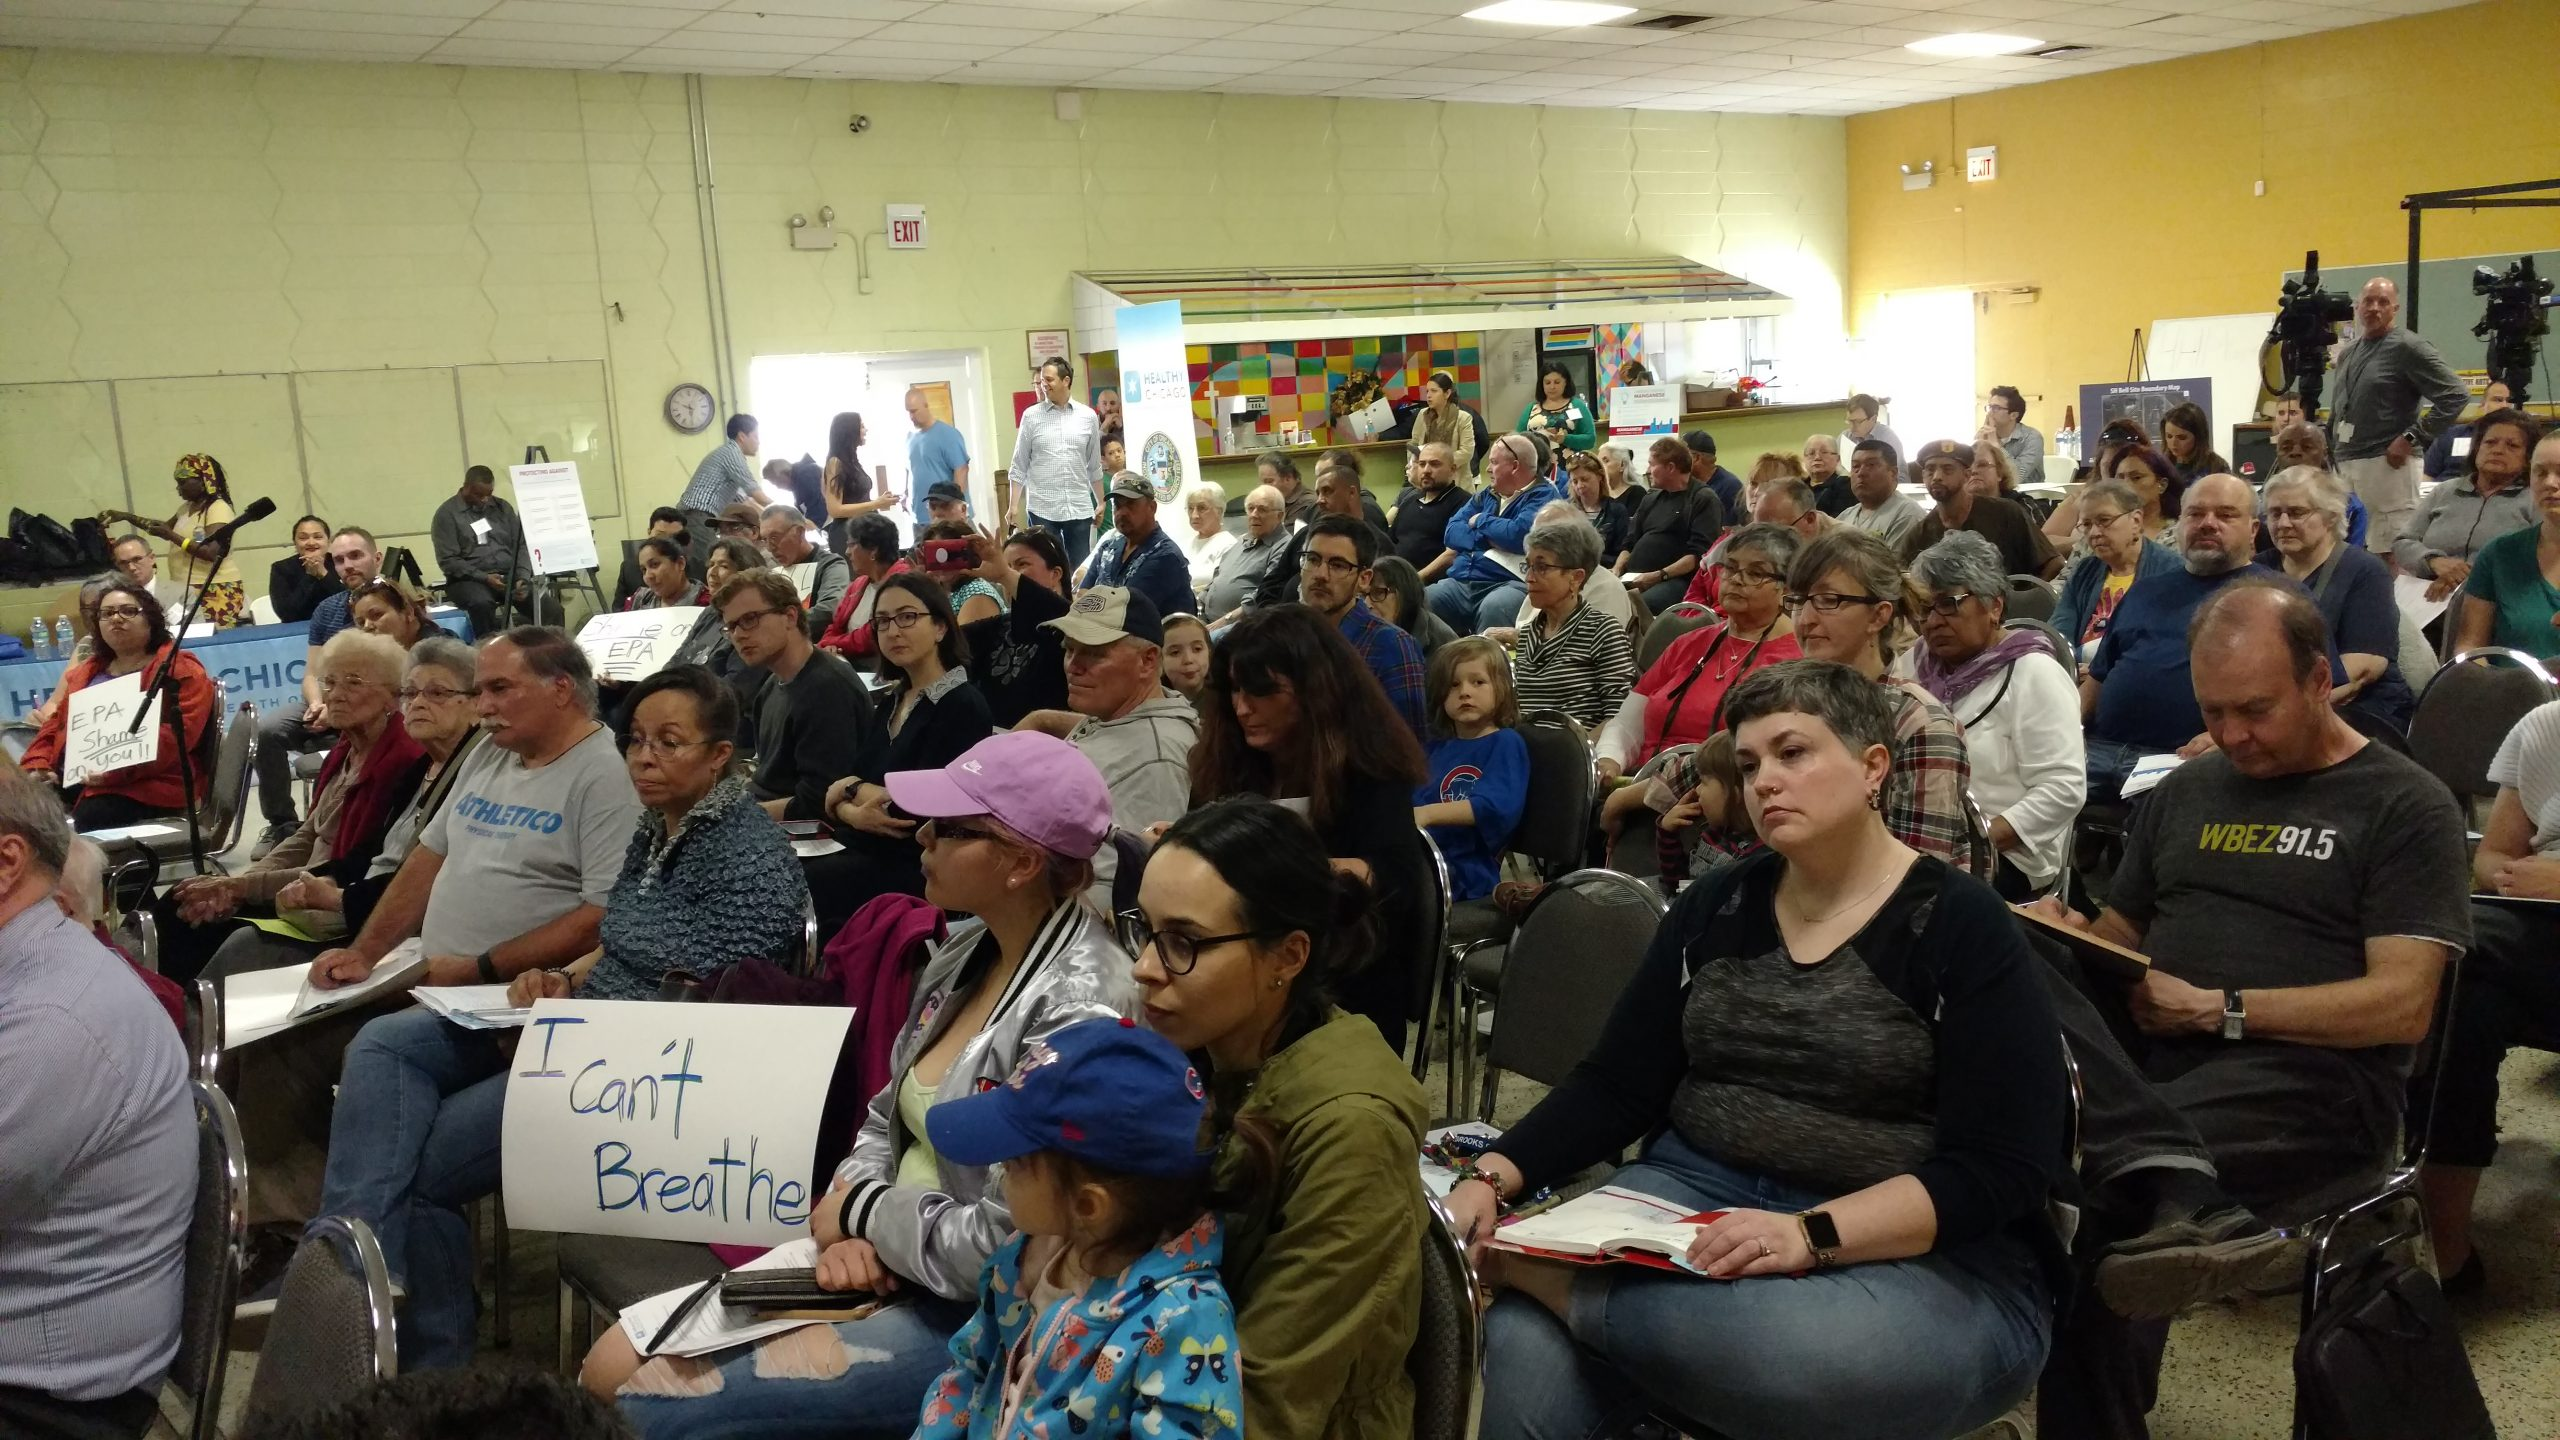 More than 100 residents gathered in an East Side community center to grill city and federal officials on manganese contamination in local air and soil.